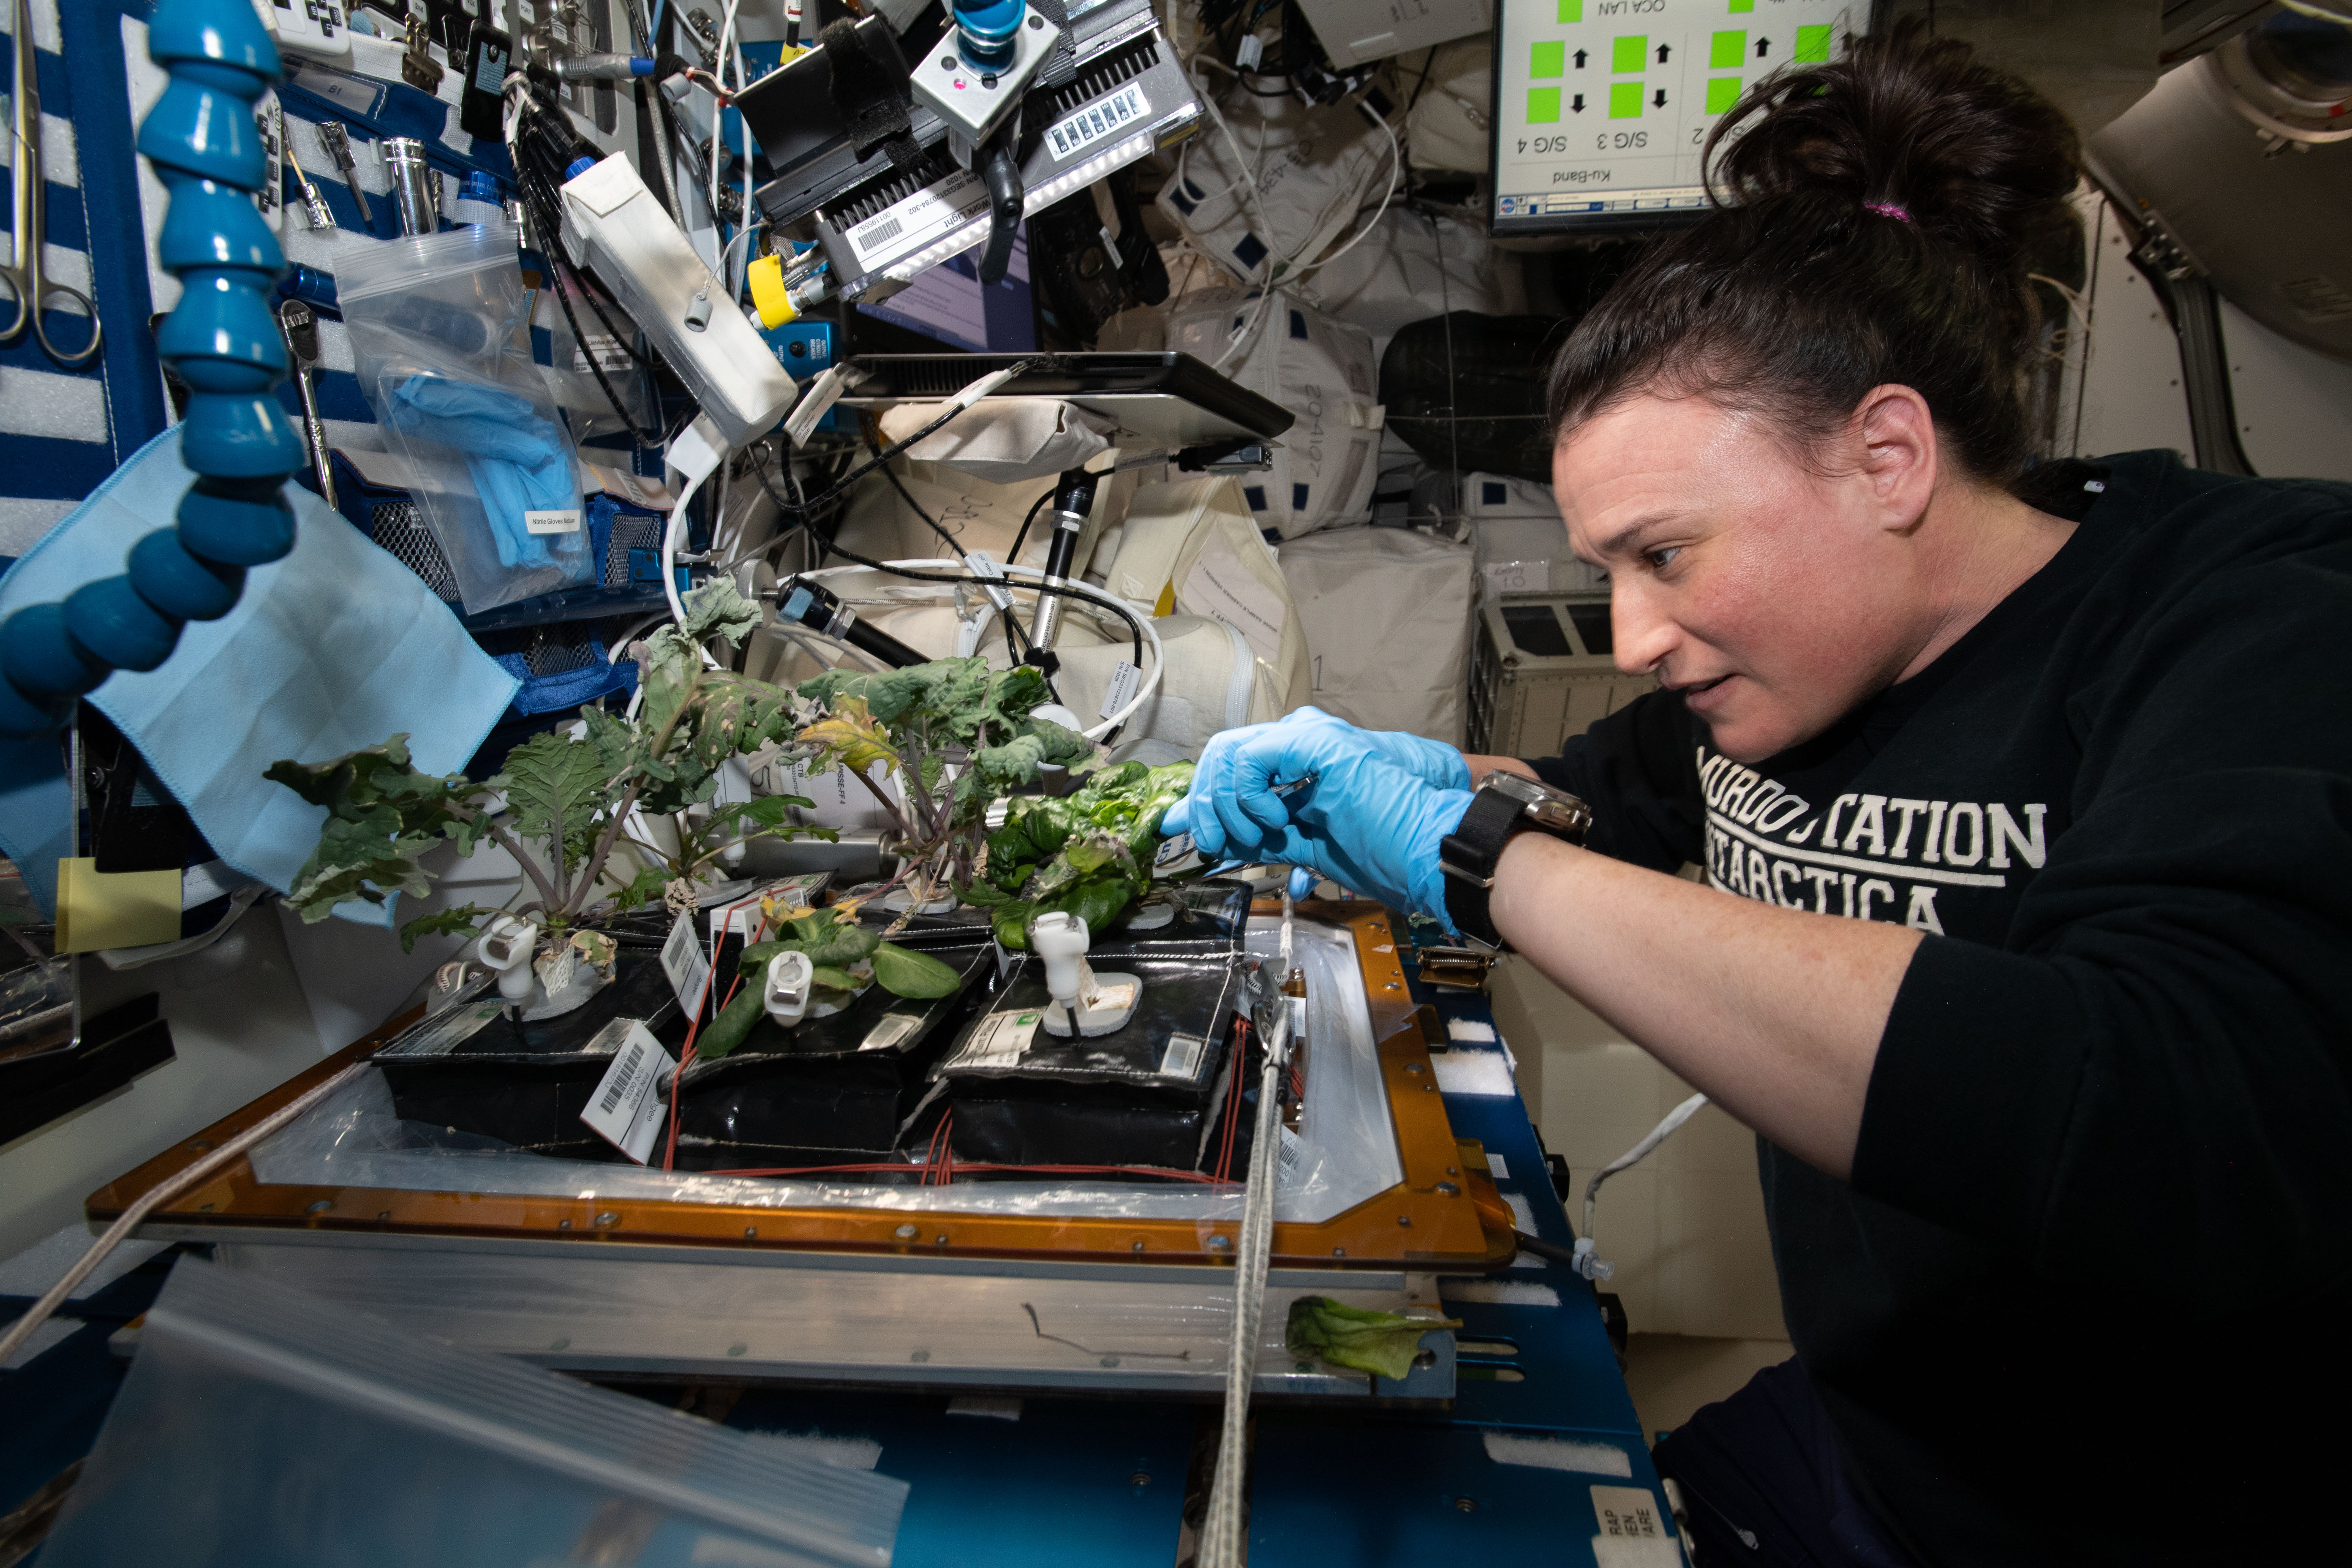 Learning to grow vegetables in space is one way to contribute to NASA citizen science projects.